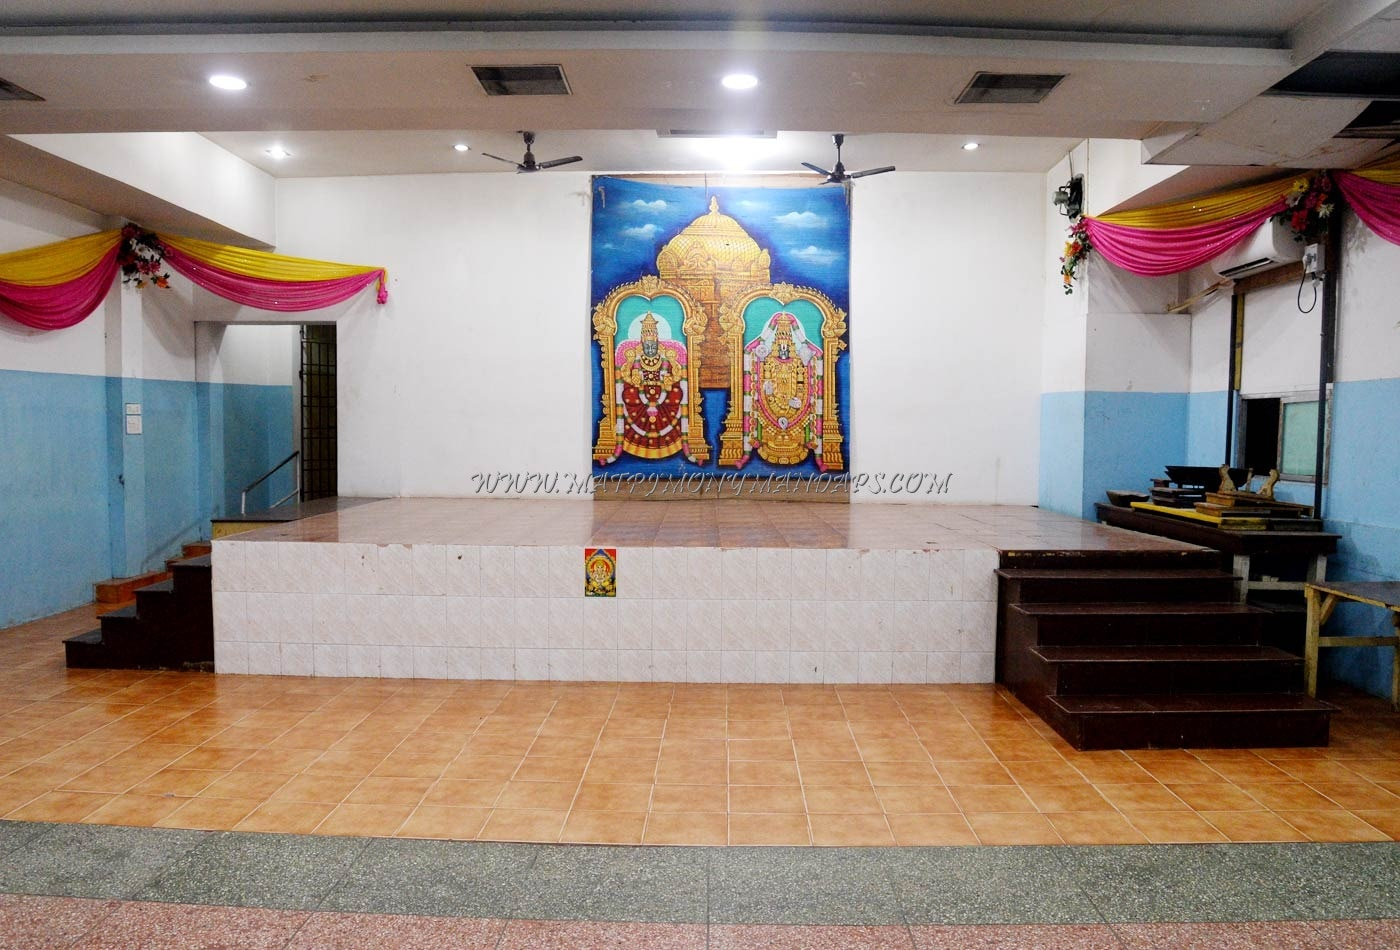 Find the availability of the Balaji Kalyana Mandapam (A/C) in T Nagar, Chennai and avail special offers